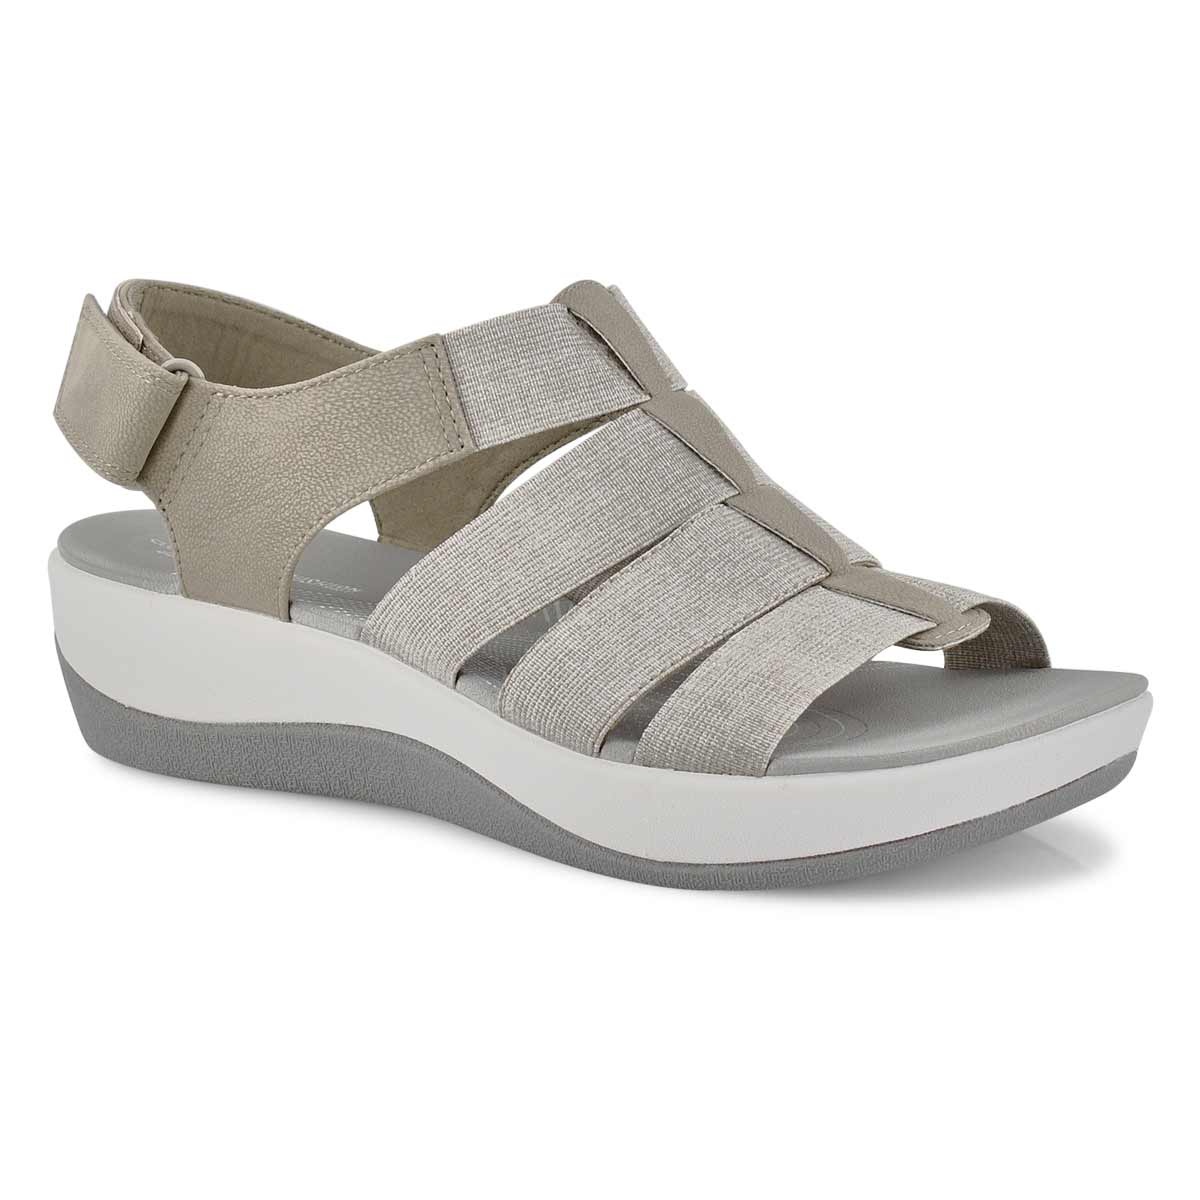 Women's ARLA SHAYLIE sand casual wedge sandals